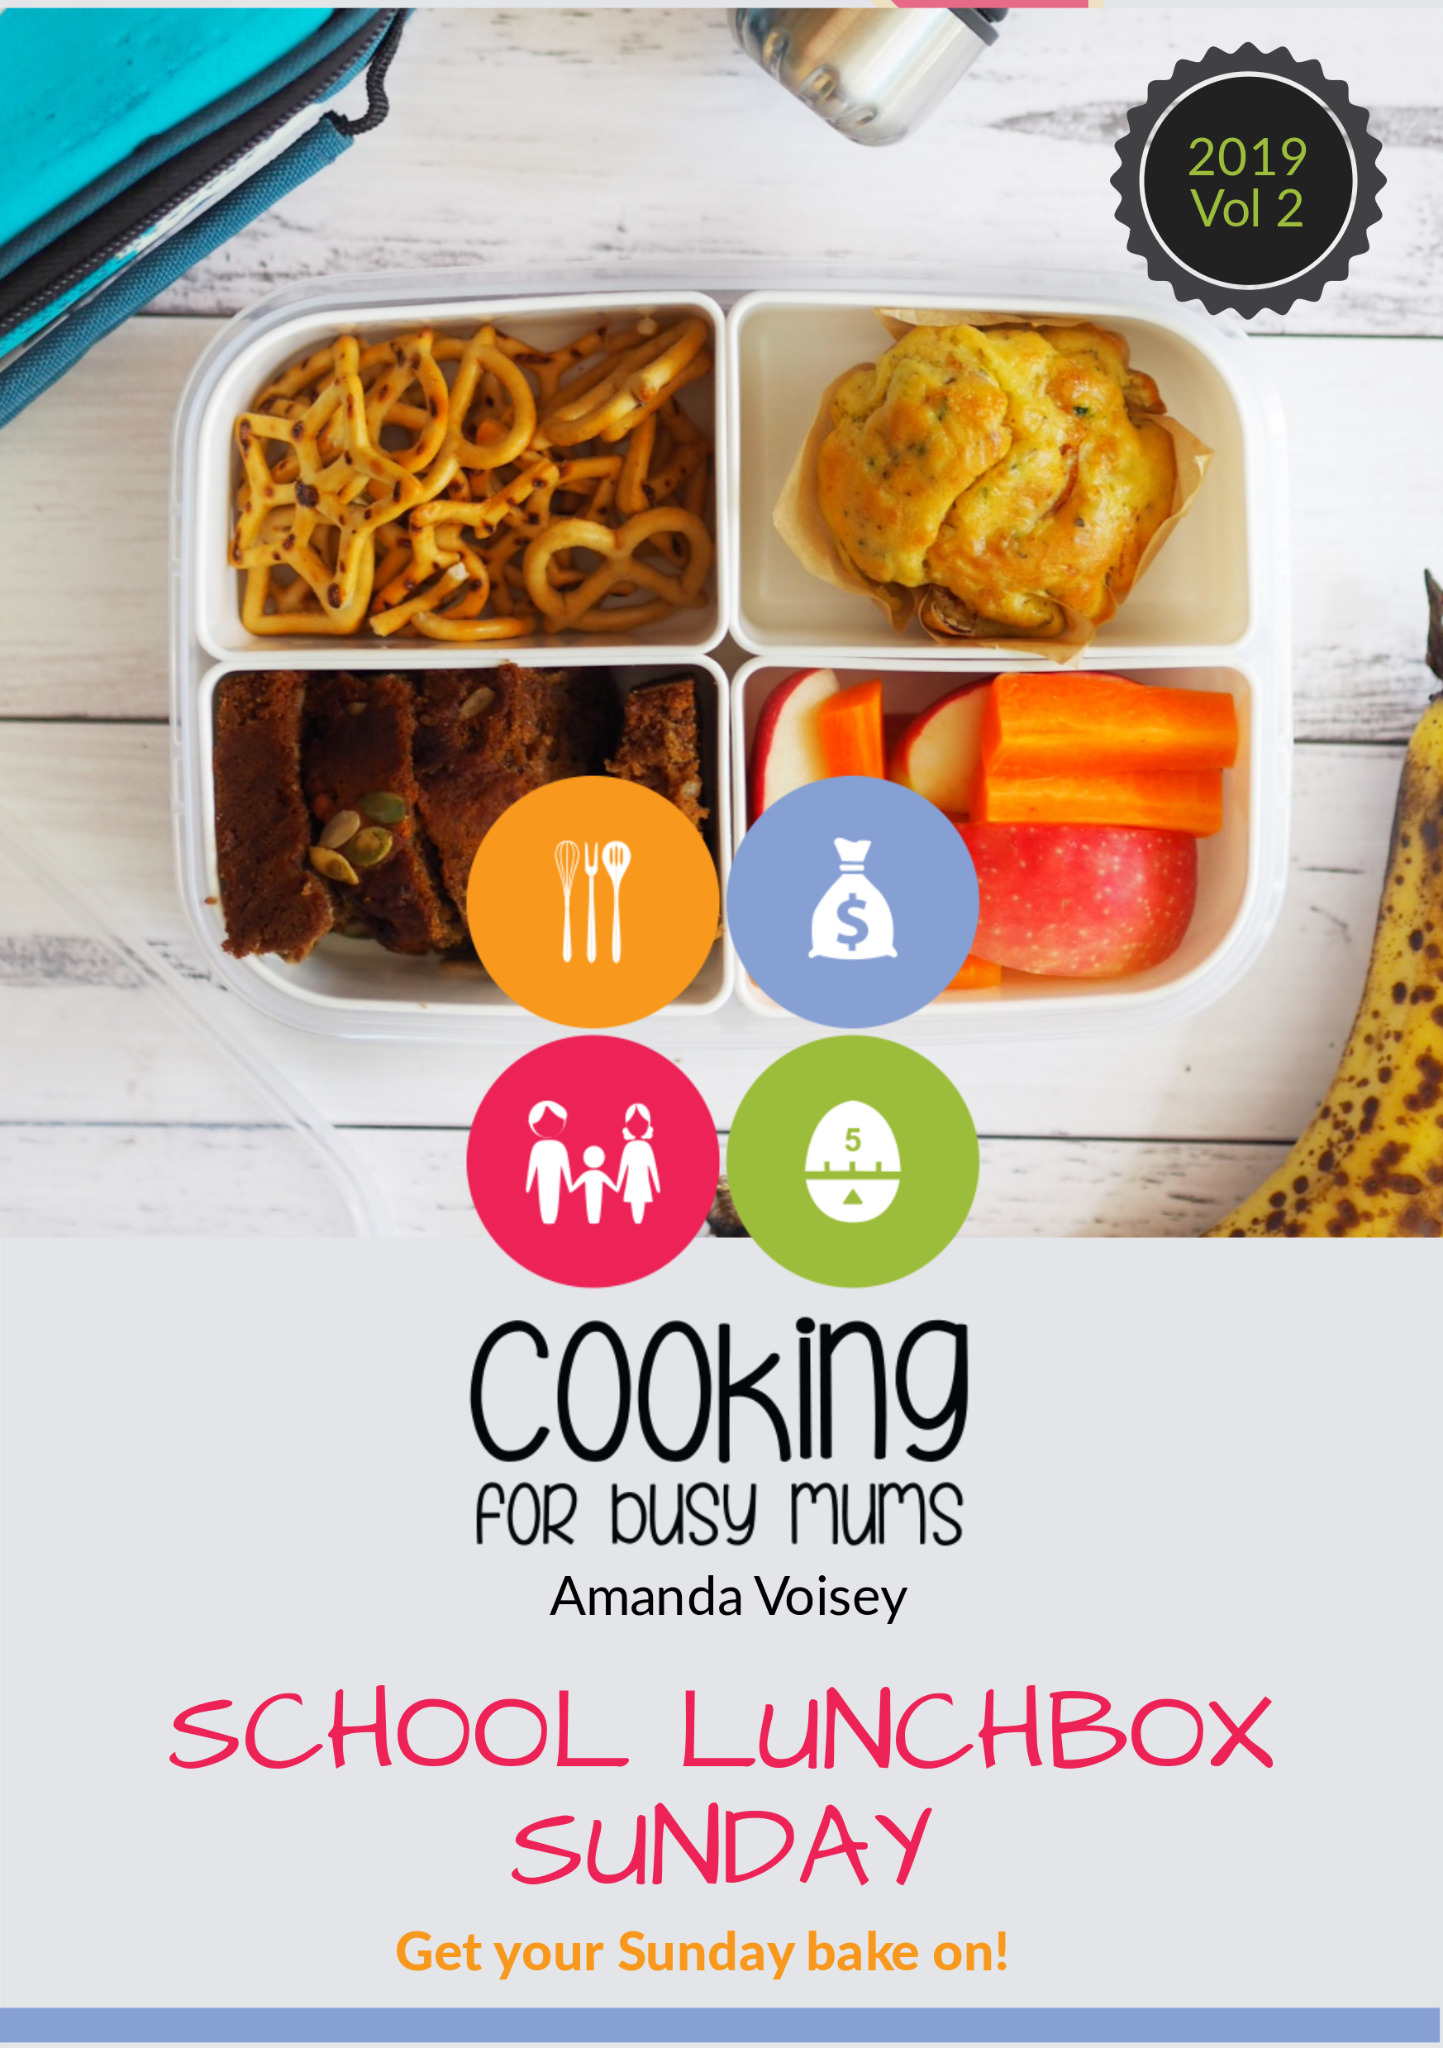 2019 School Lunchbox Sunday the Magazine - Ebook ONLY